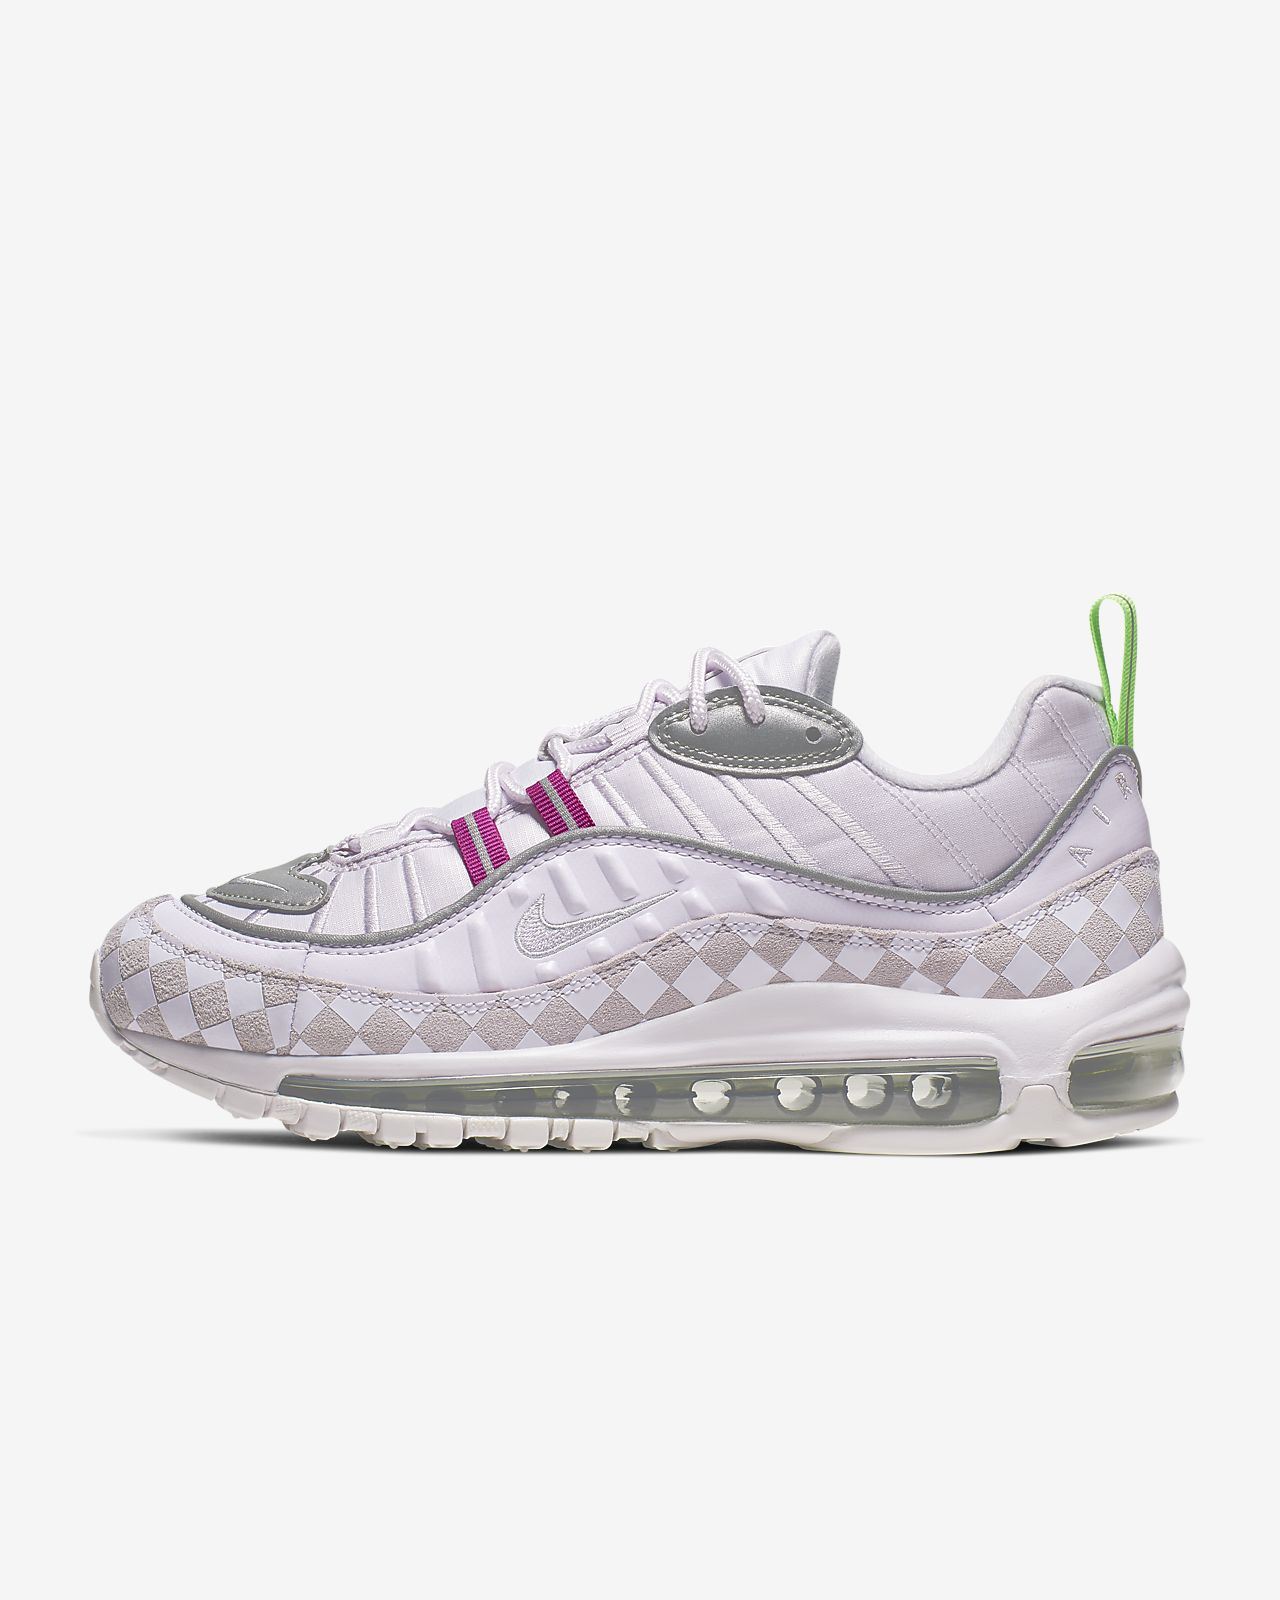 official photos 12721 52124 Nike Air Max 98 Women's Chequered Shoe